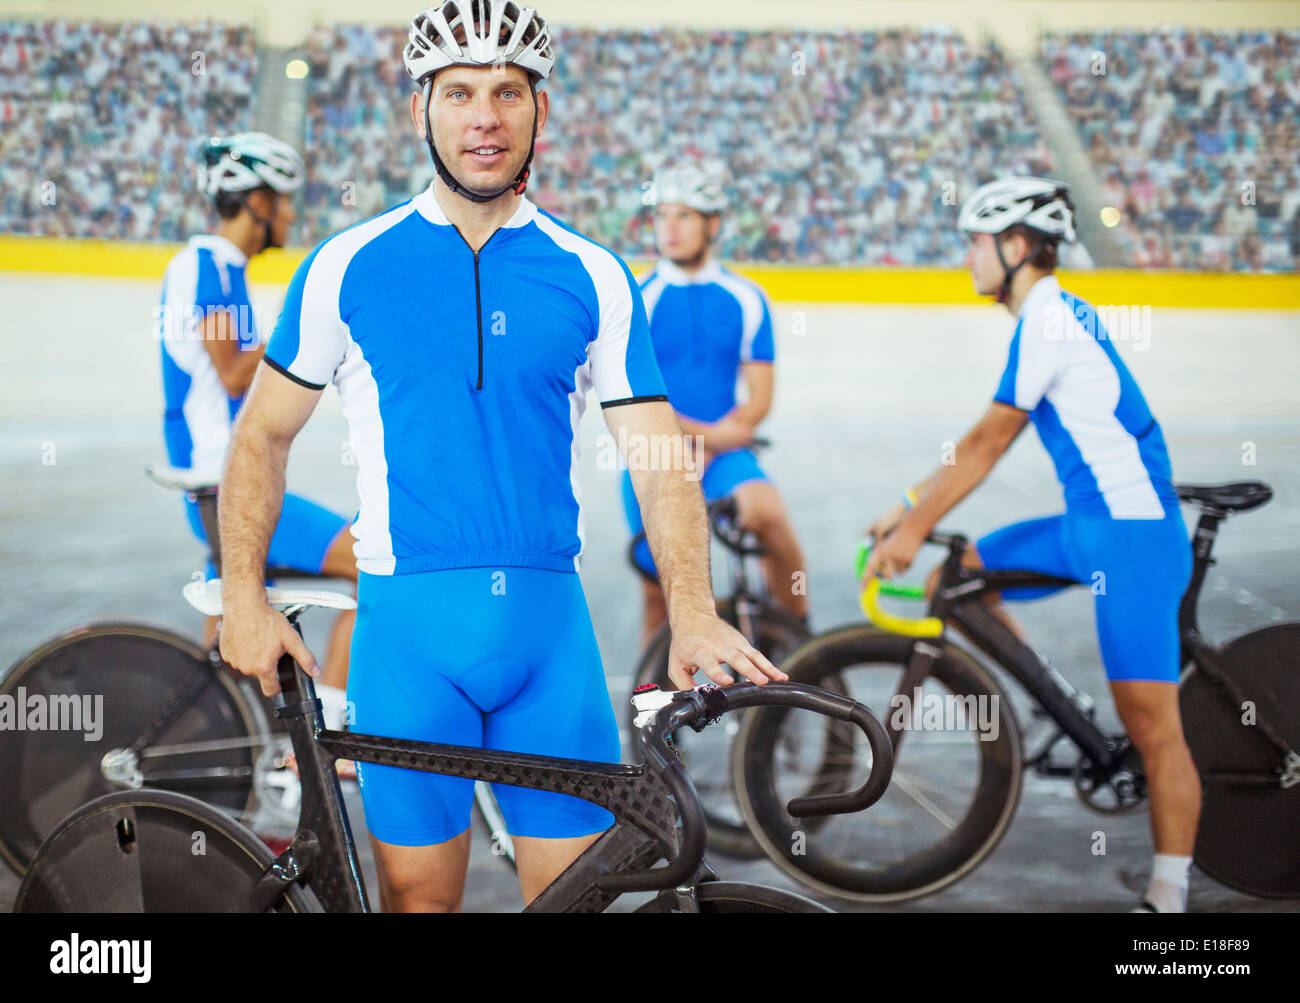 Track cyclists standing in velodrome - Stock Image